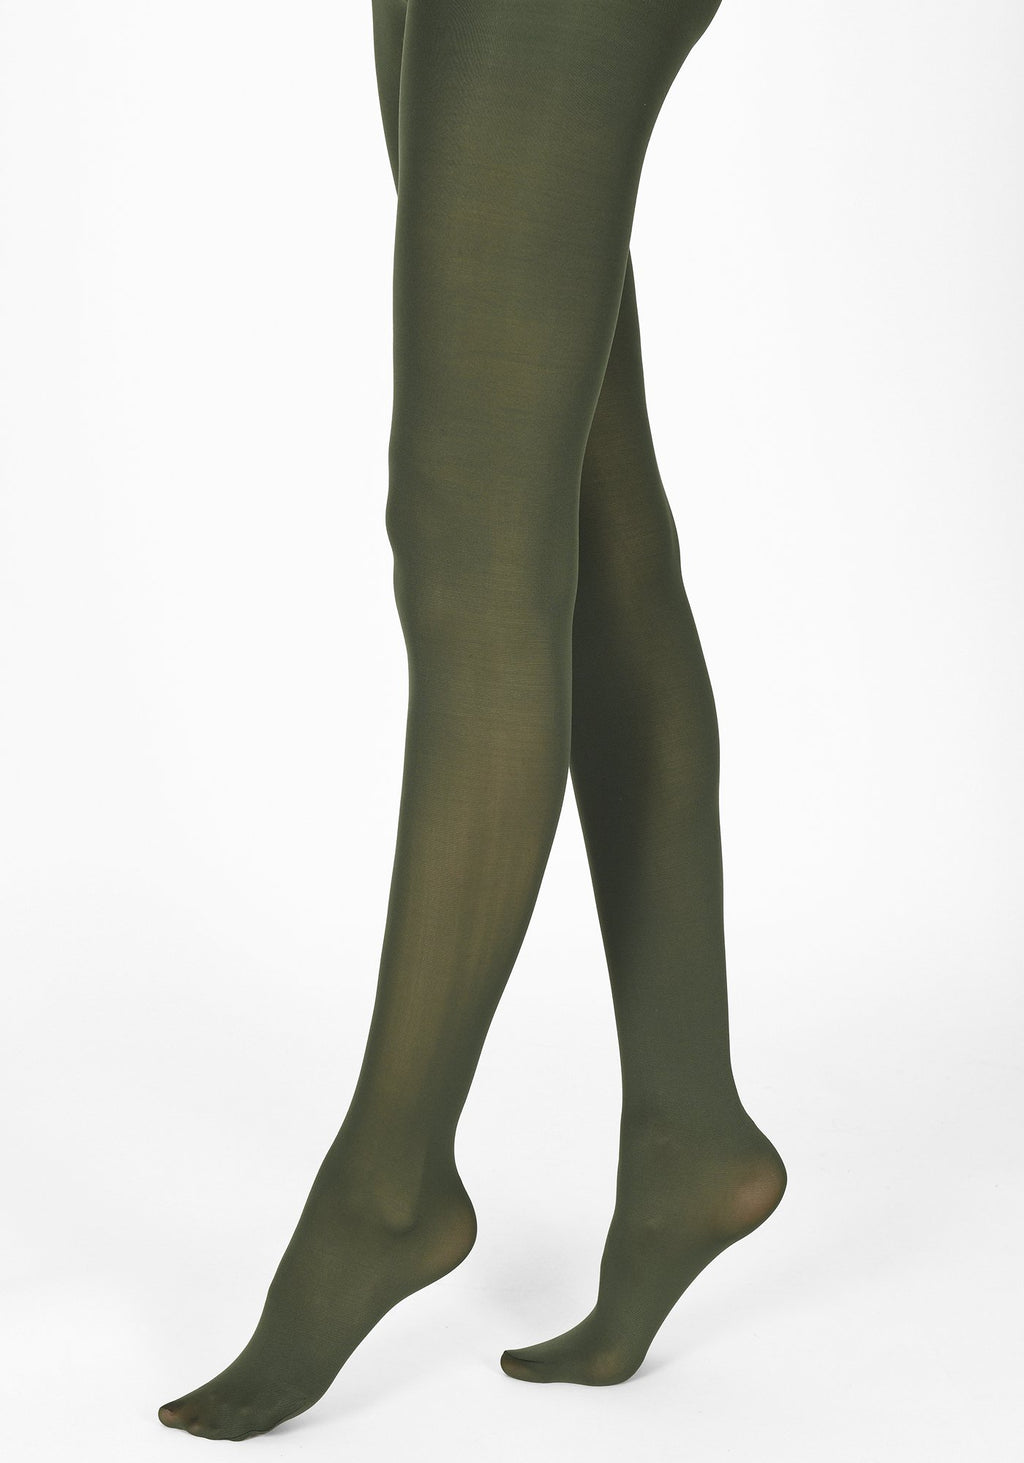 bottle green tights 60 denier 1